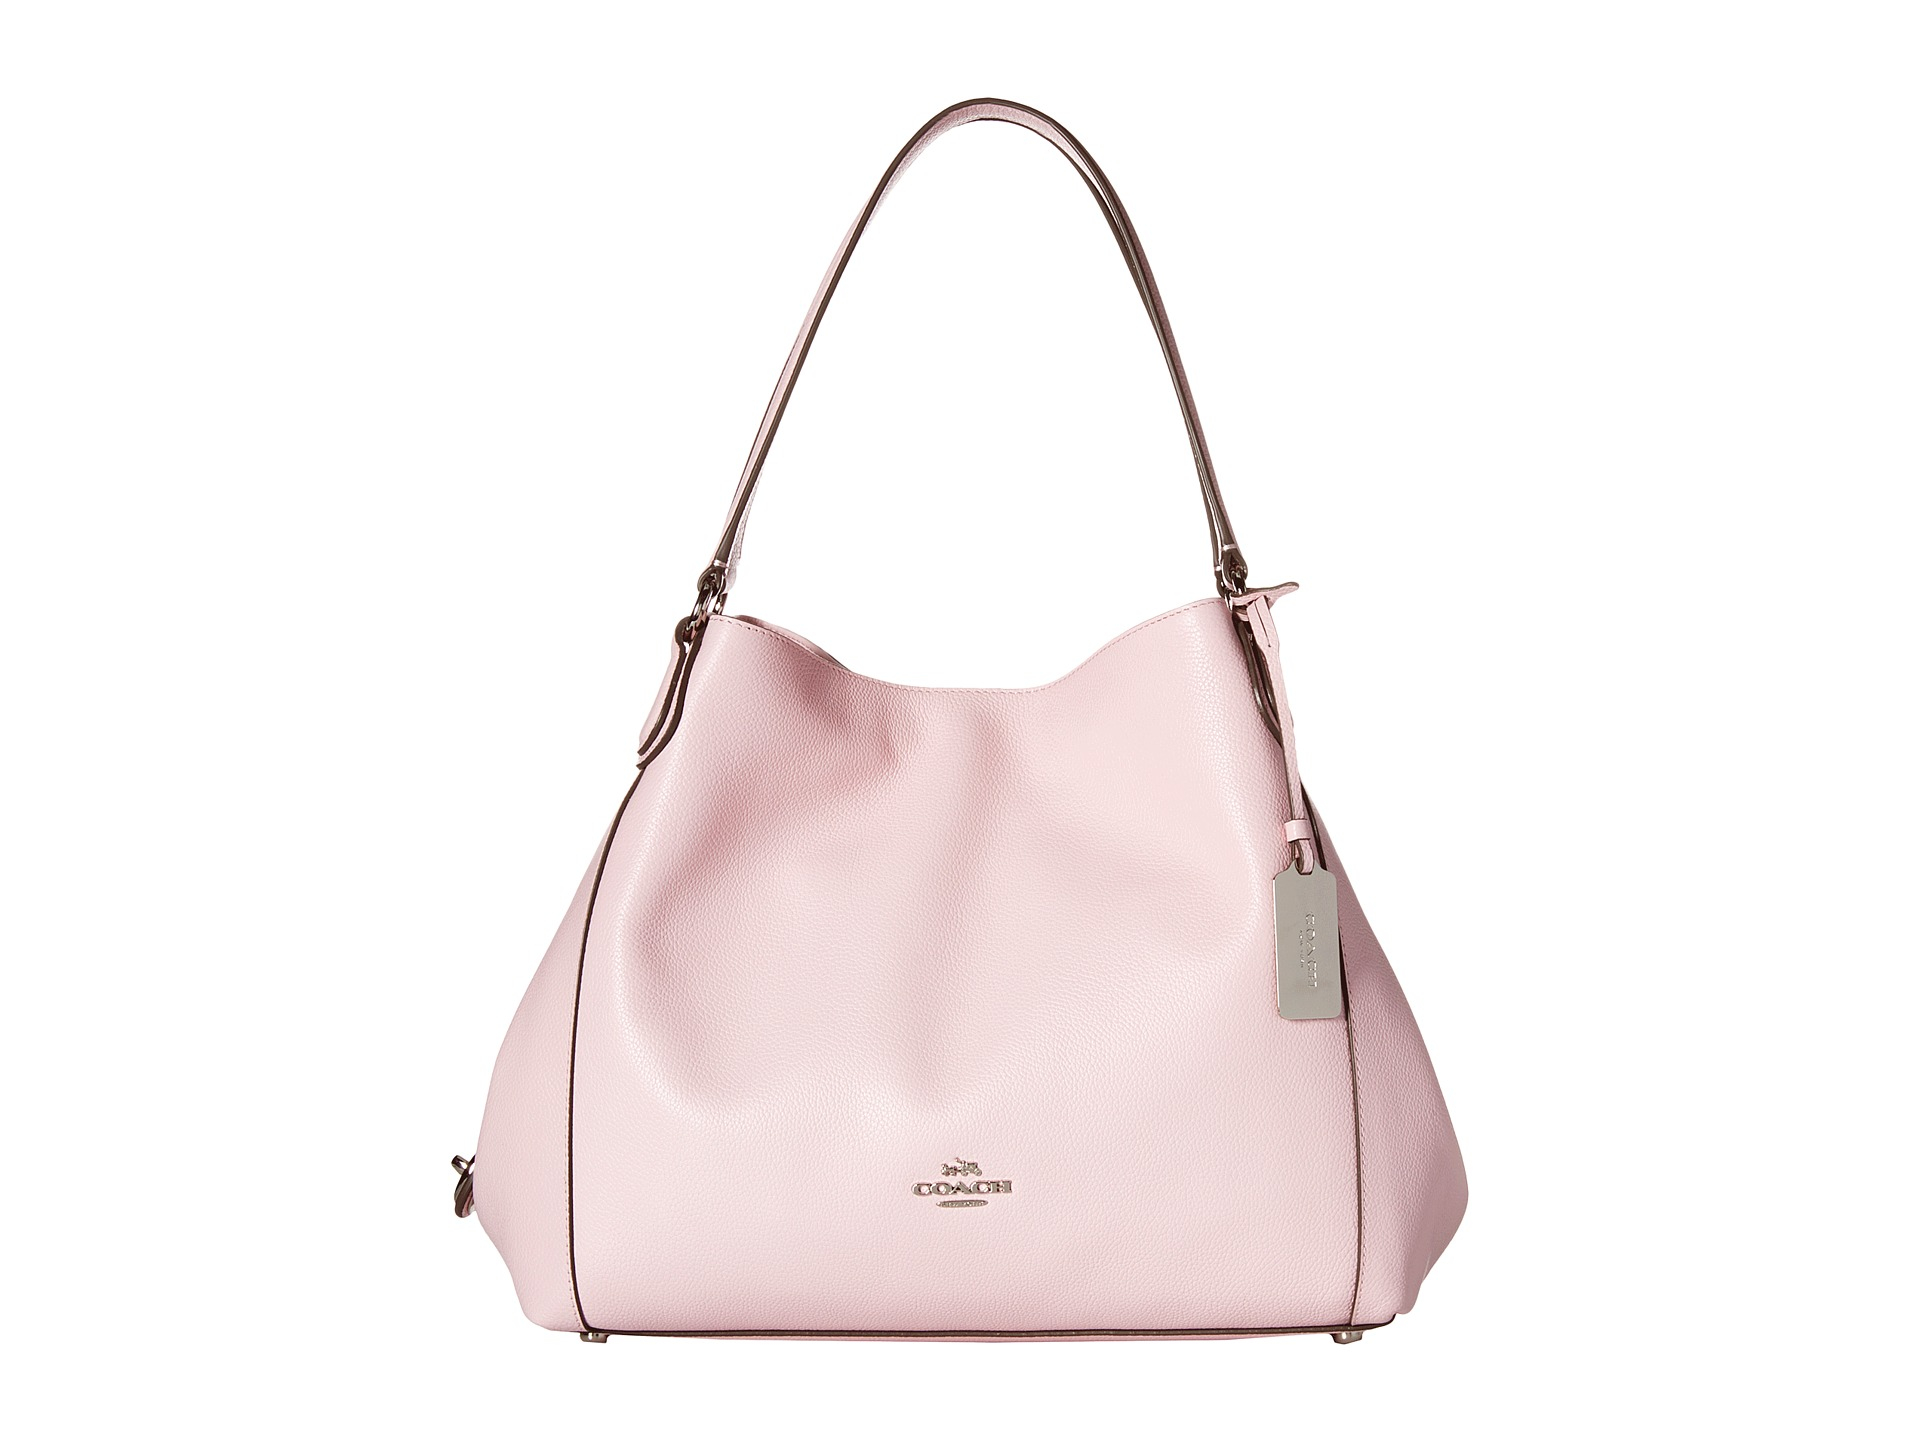 5e1156bb19 Lyst - COACH Refined Pebble Leather Edie 31 Shoulder Bag in Pink